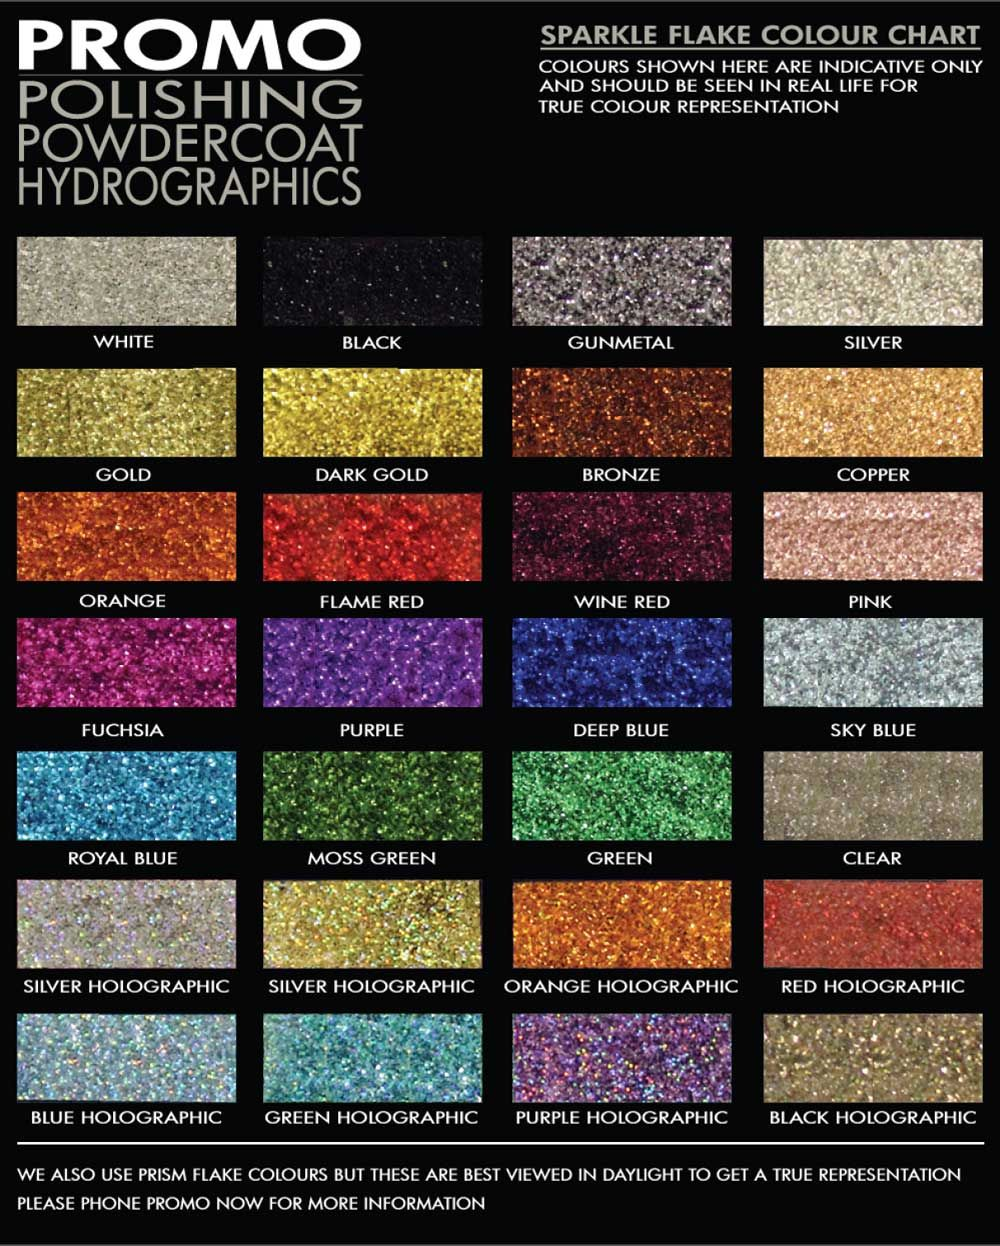 Sparkly powder coat paints. There are many other colors and